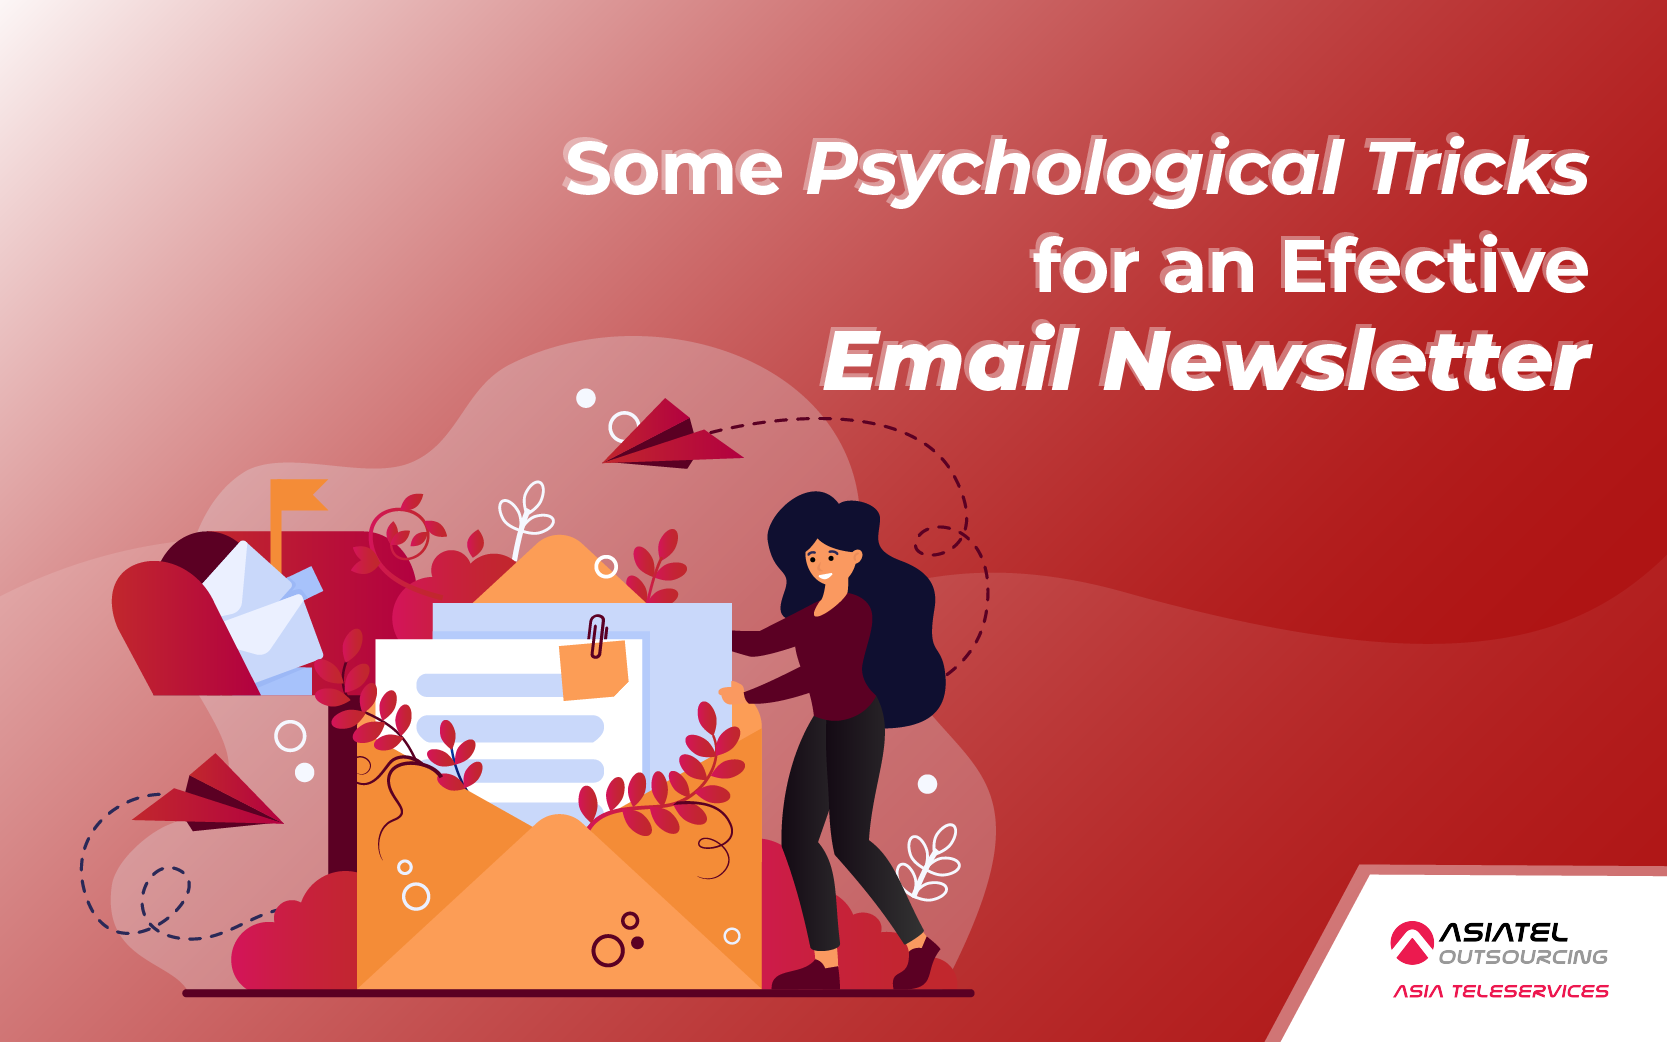 Some Psychological Tricks for an Effective Email Newsletter